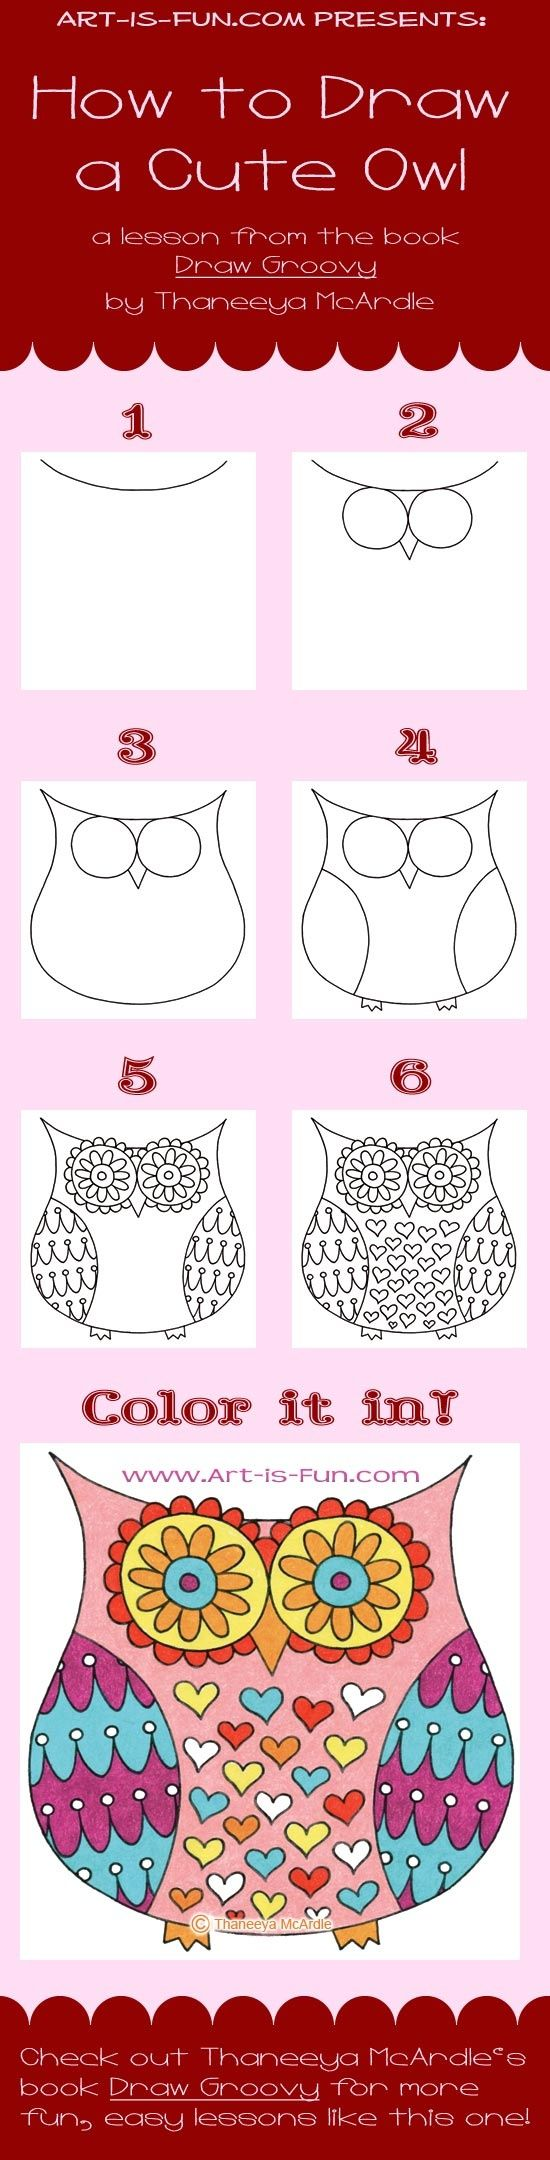 How to Draw an Owl. Easy Step-by-Step Lesson by Thaneeya McArdle